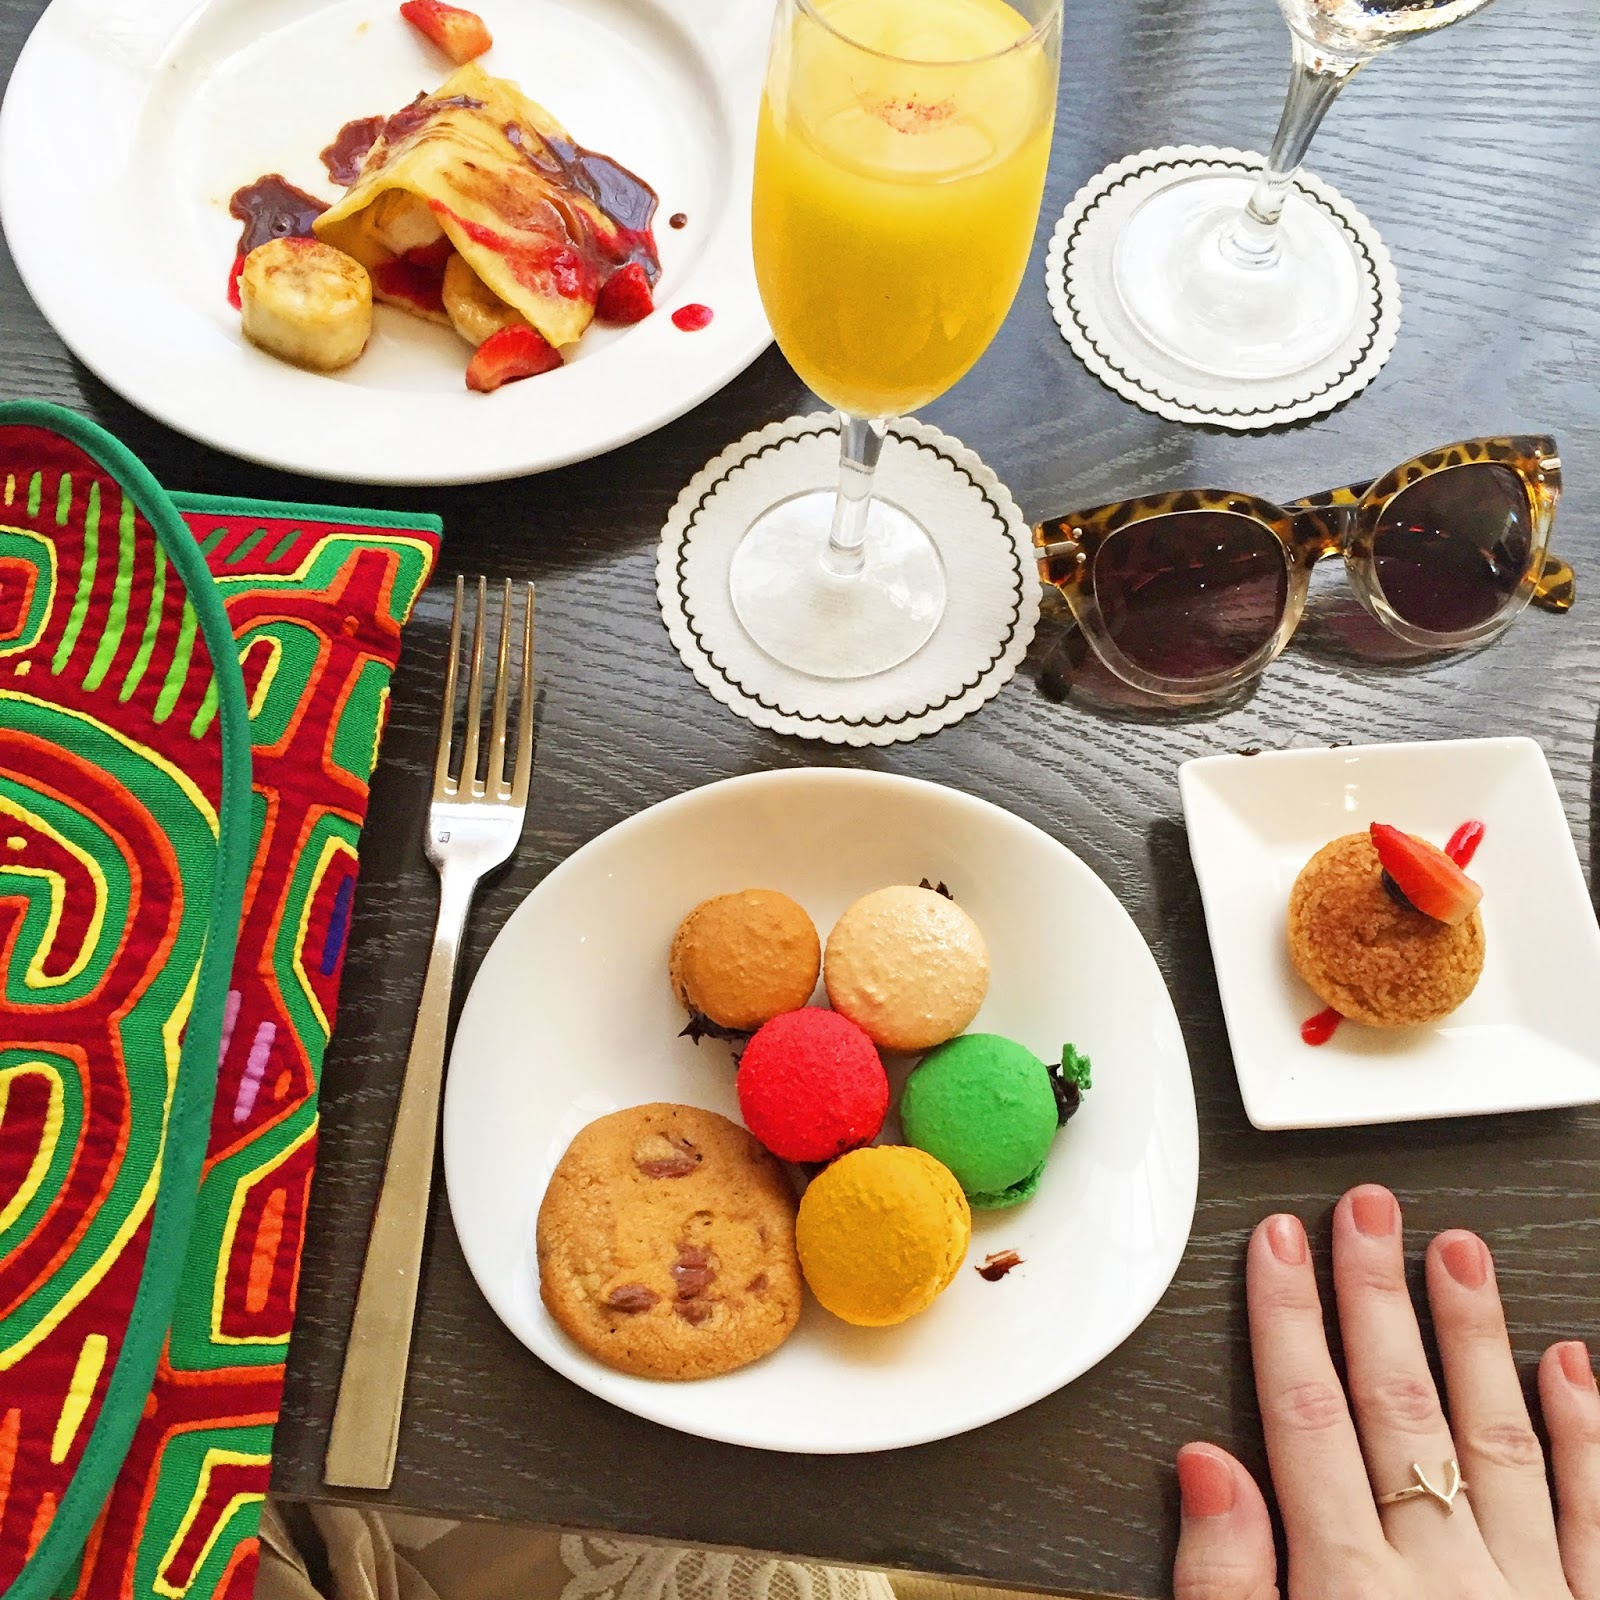 Macaroons and Crepes make the best desserts for Brunch